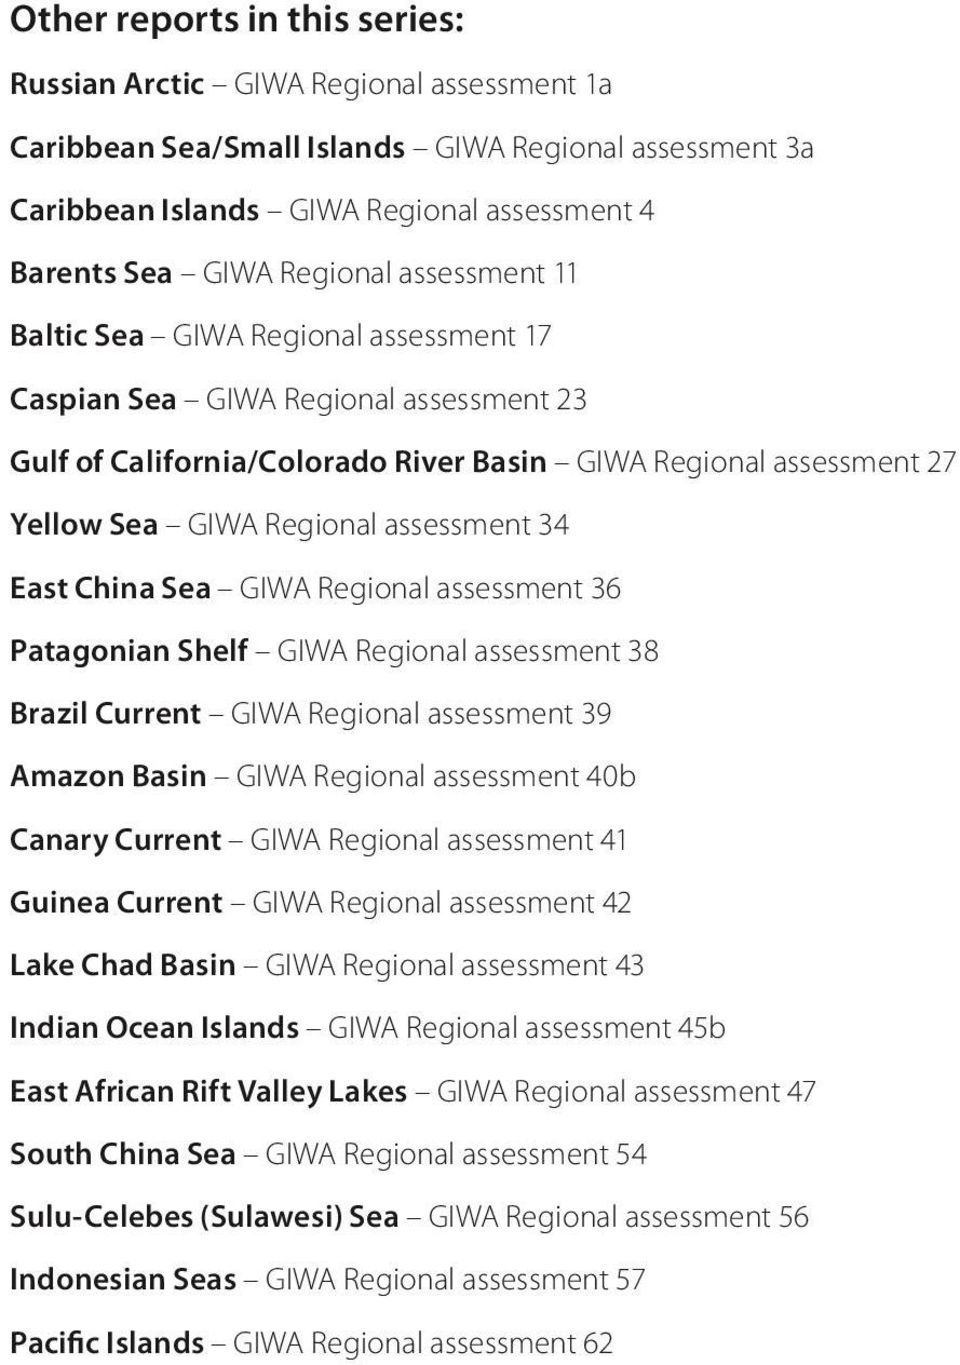 East China Sea GIWA Regional assessment 36 Patagonian Shelf GIWA Regional assessment 38 Brazil Current GIWA Regional assessment 39 Amazon Basin GIWA Regional assessment 40b Canary Current GIWA